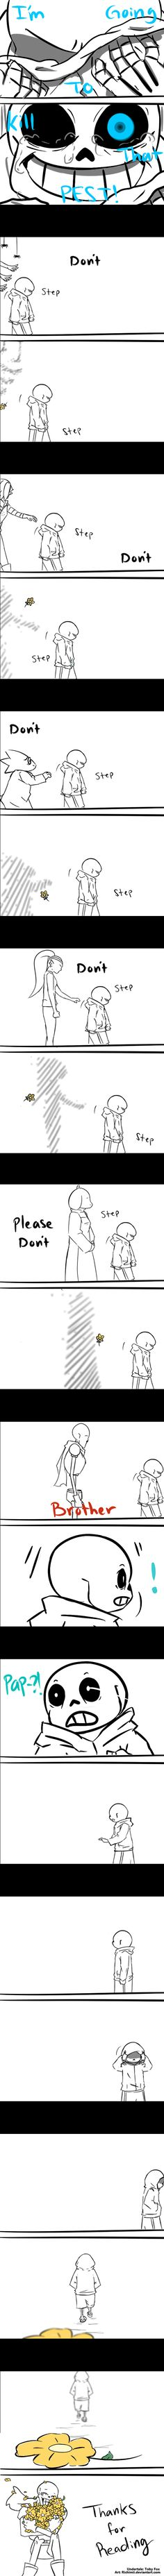 Undertale: Chose Revenge by Richimii on DeviantArt